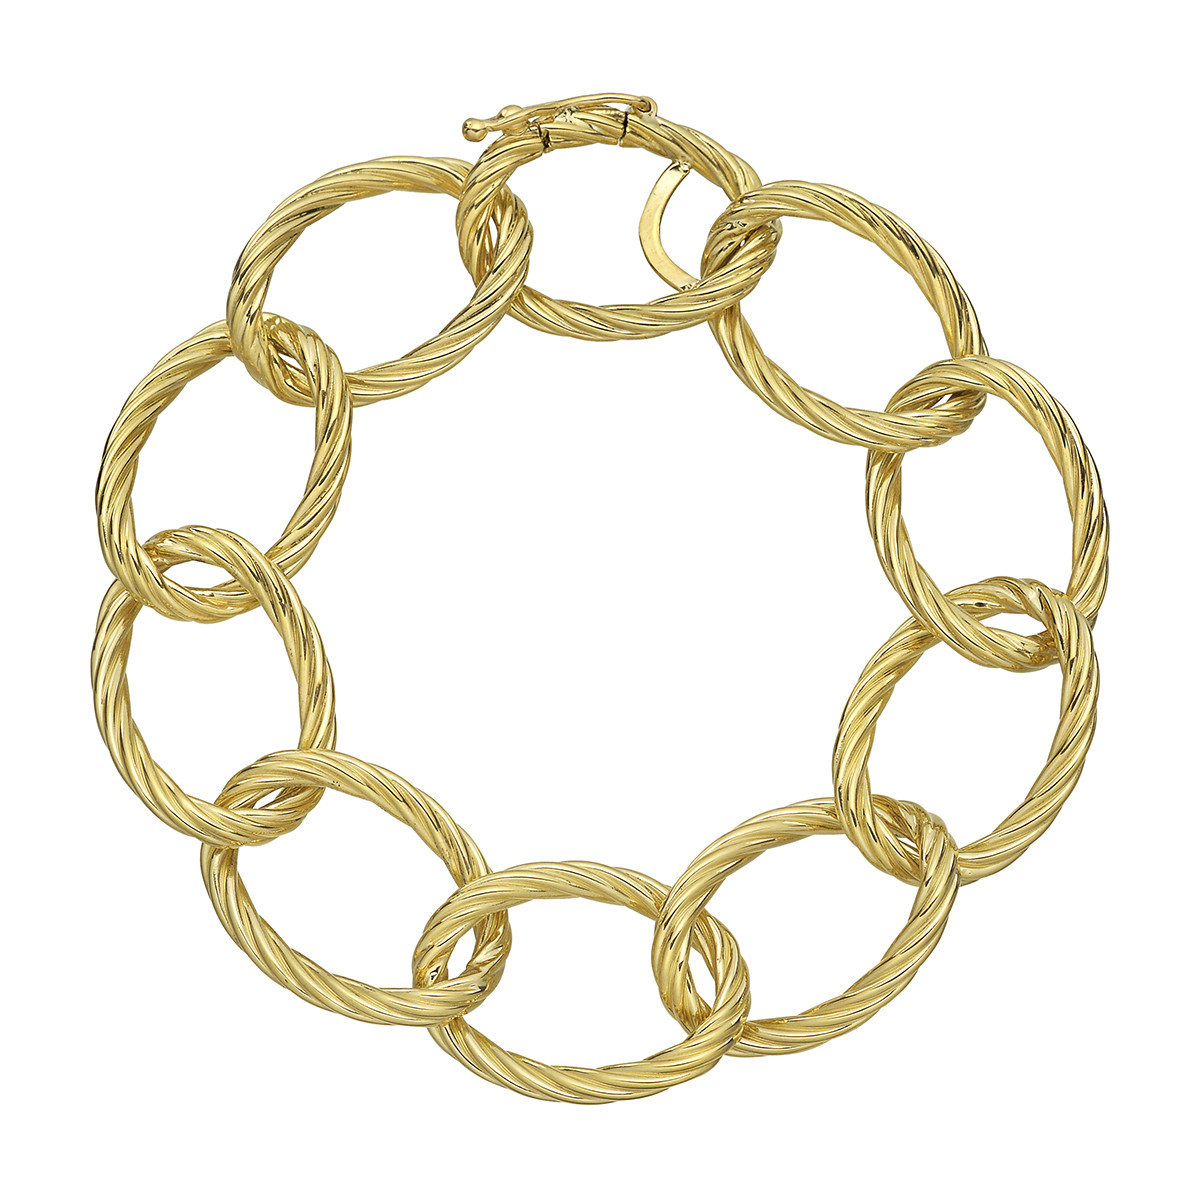 18k Yellow Gold Oval Twisted Link Bracelet